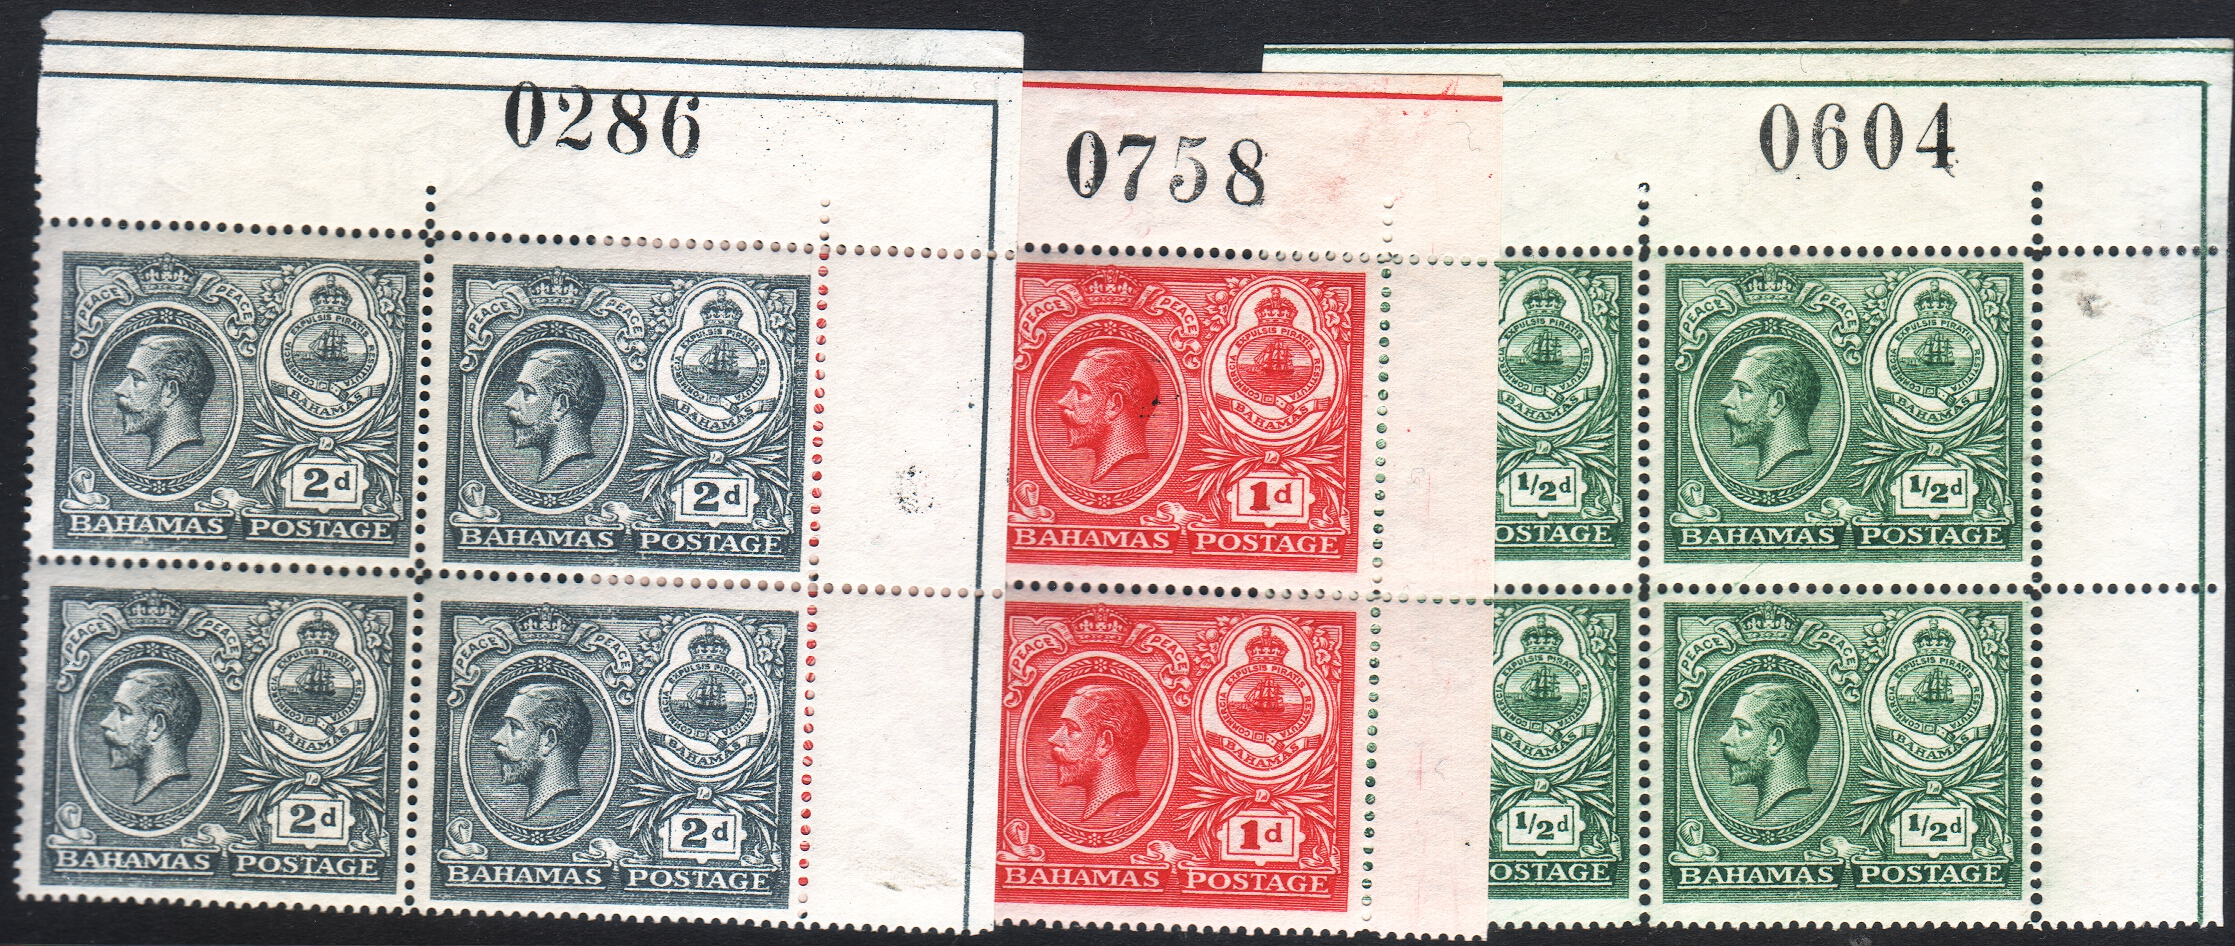 Bahamas (1973-now) Bahamas 1981 Scott # 484-485 Mint Never Hinged Set Durable Service Caribbean